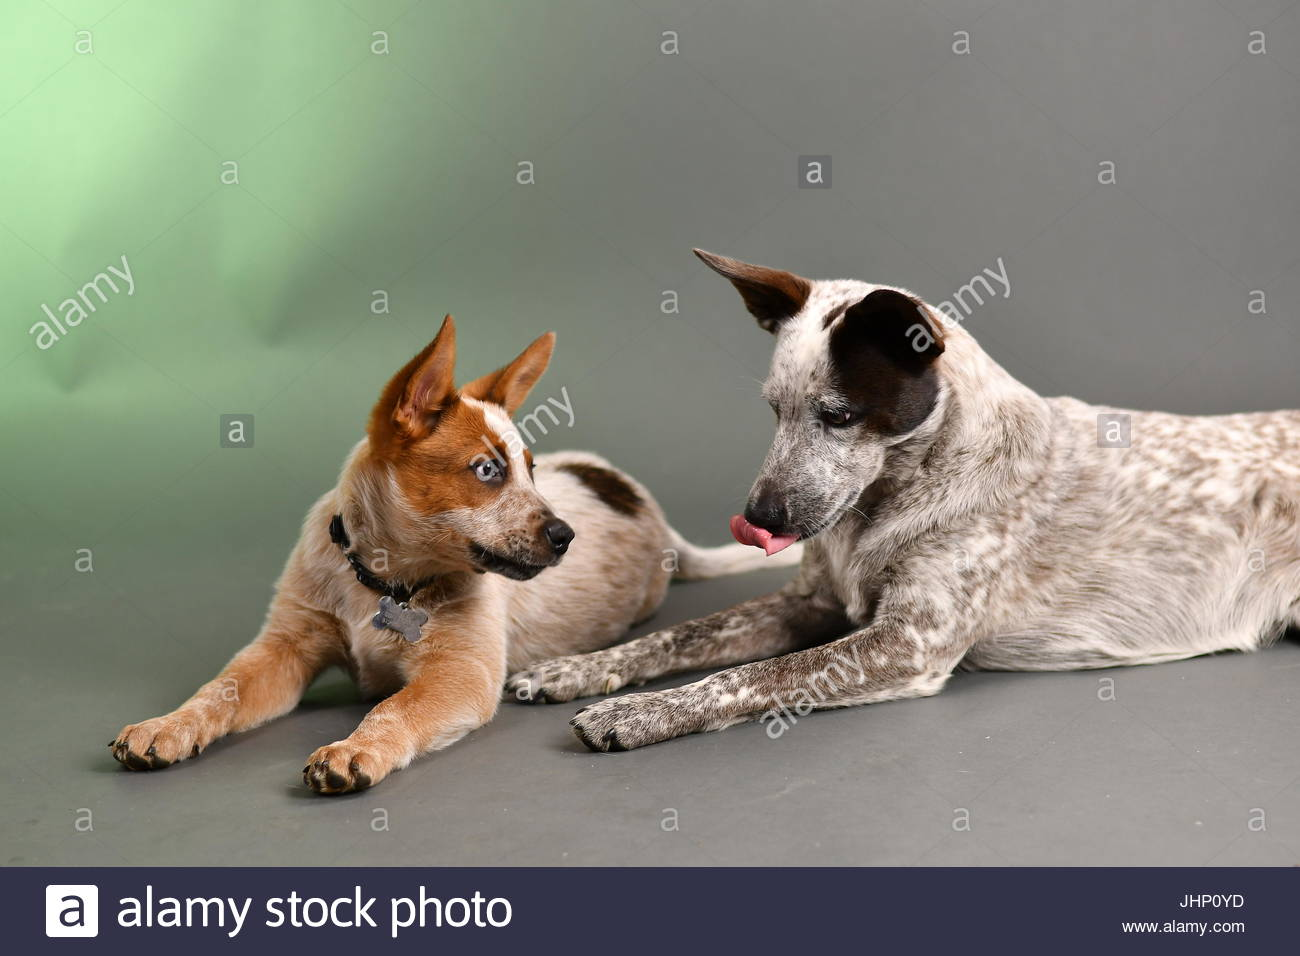 Australian cattle dogs in studio with green and gray background - Stock Image